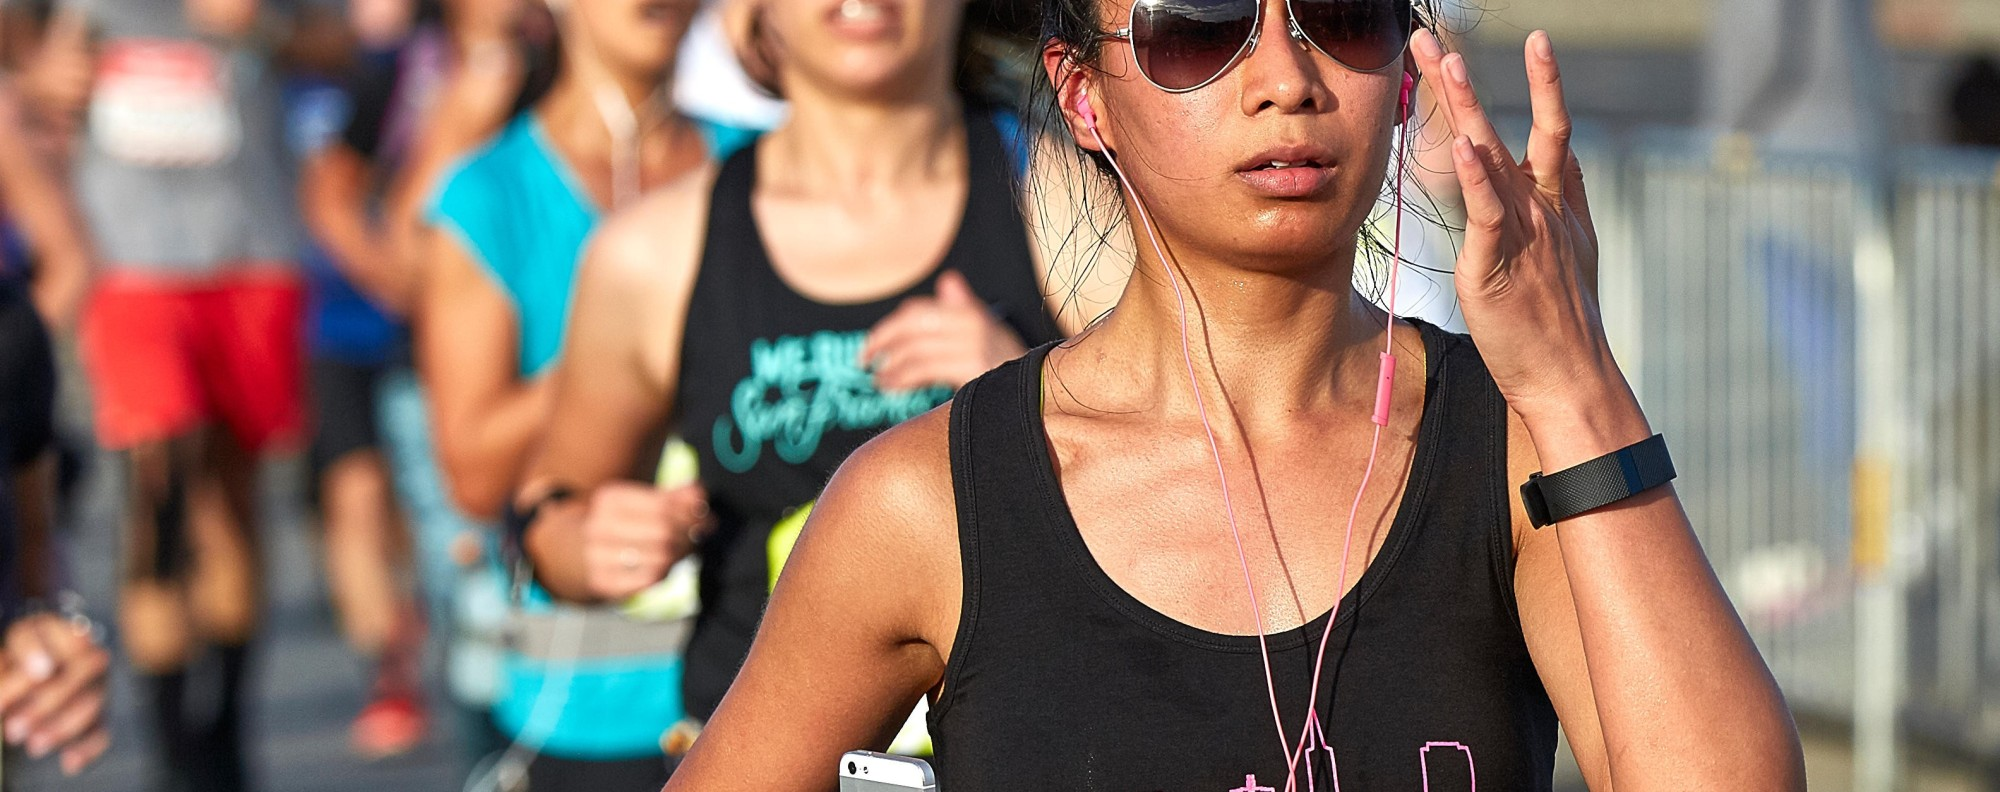 Running with headphones is fine, don't listen to the noise, unless it's music to your ears. Photo: Alamy